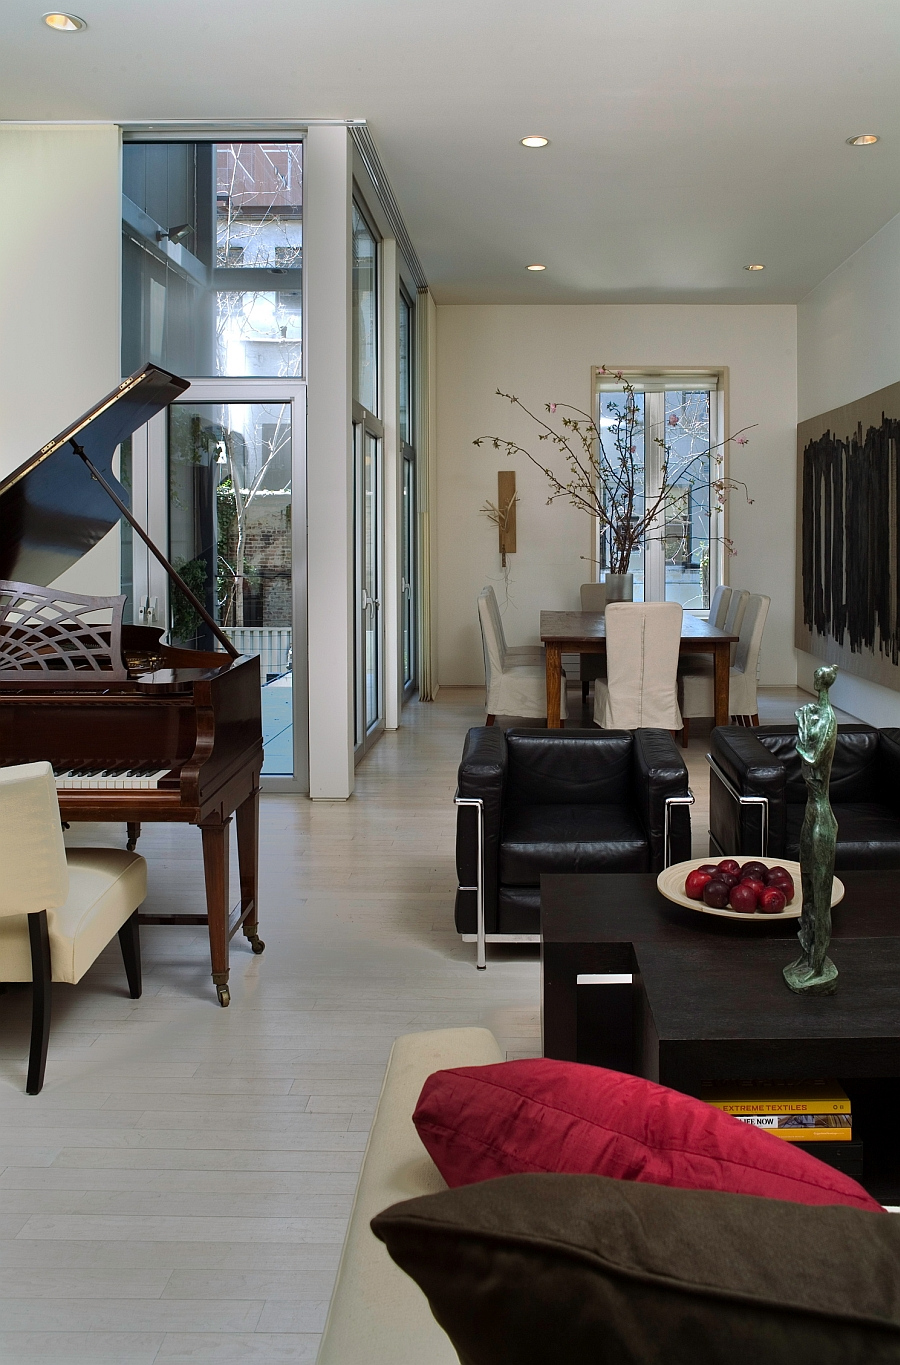 High ceiling gives the townhouse interior an airy appeal